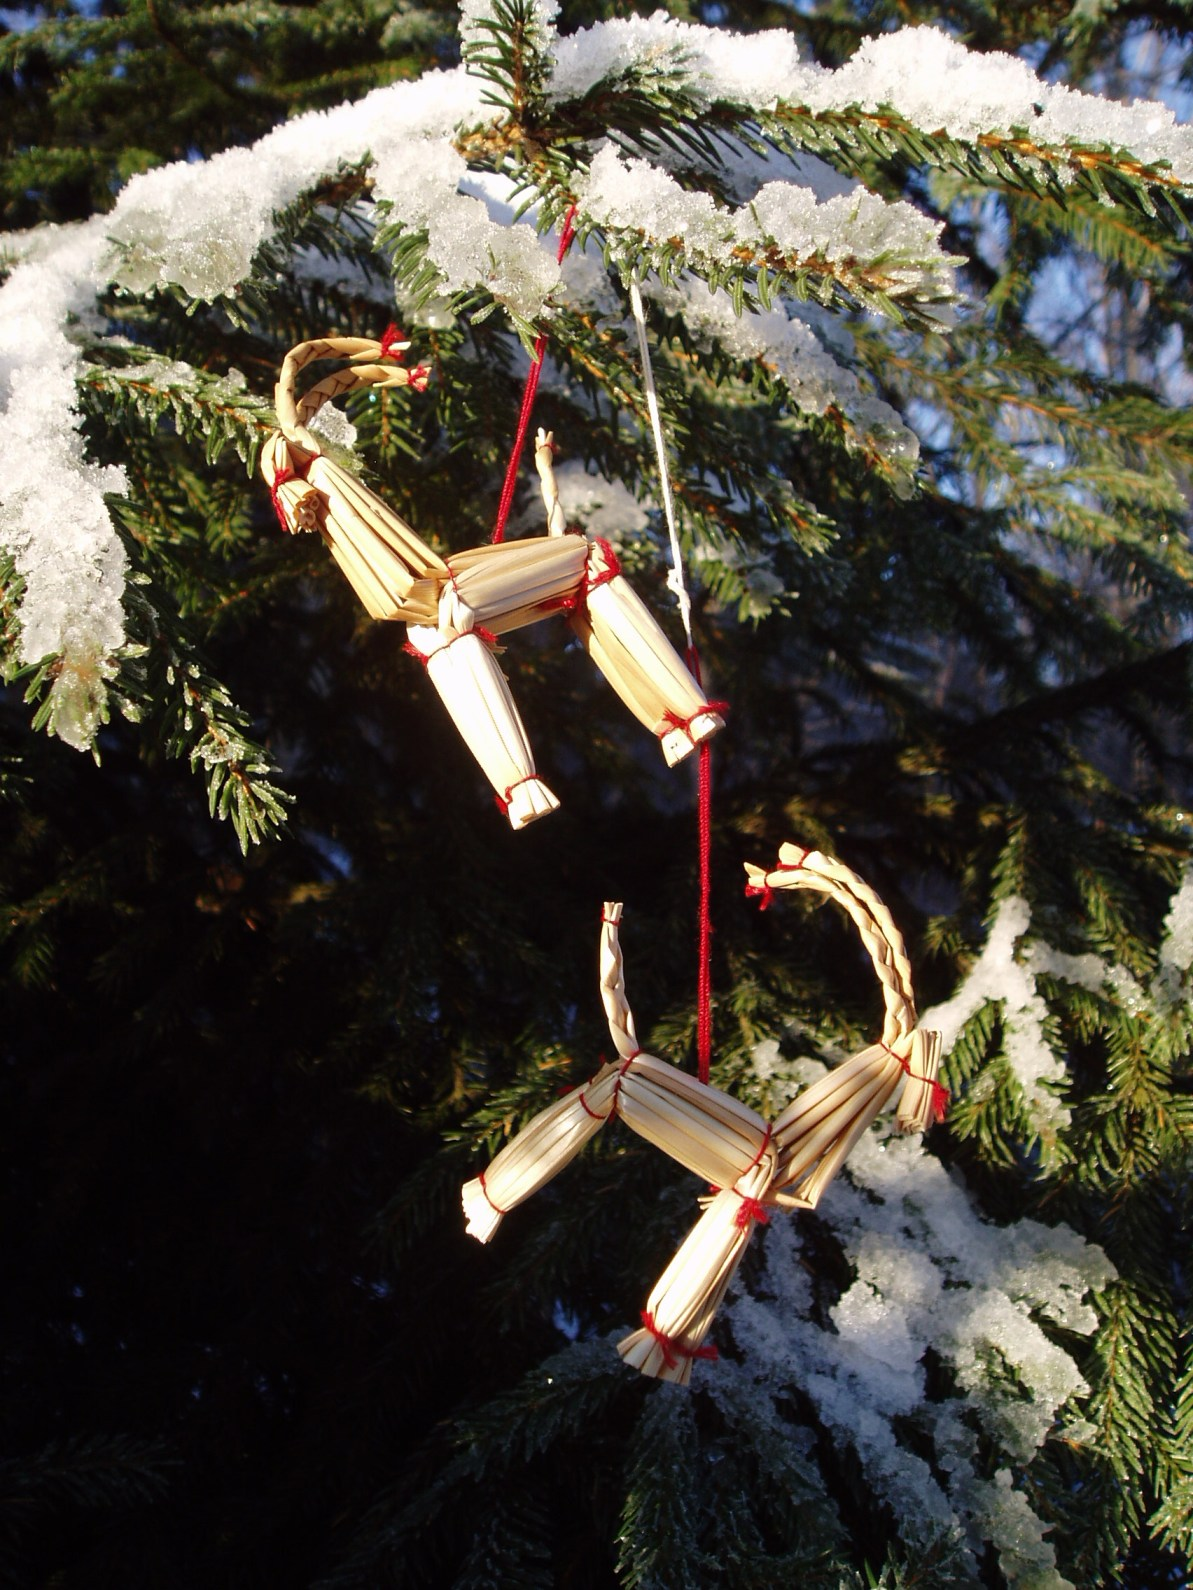 A close-up of two Christmas goat decorations. Udo Schröter (CC BY 2.0) https://www.flickr.com/photos/nordelch/386418158/